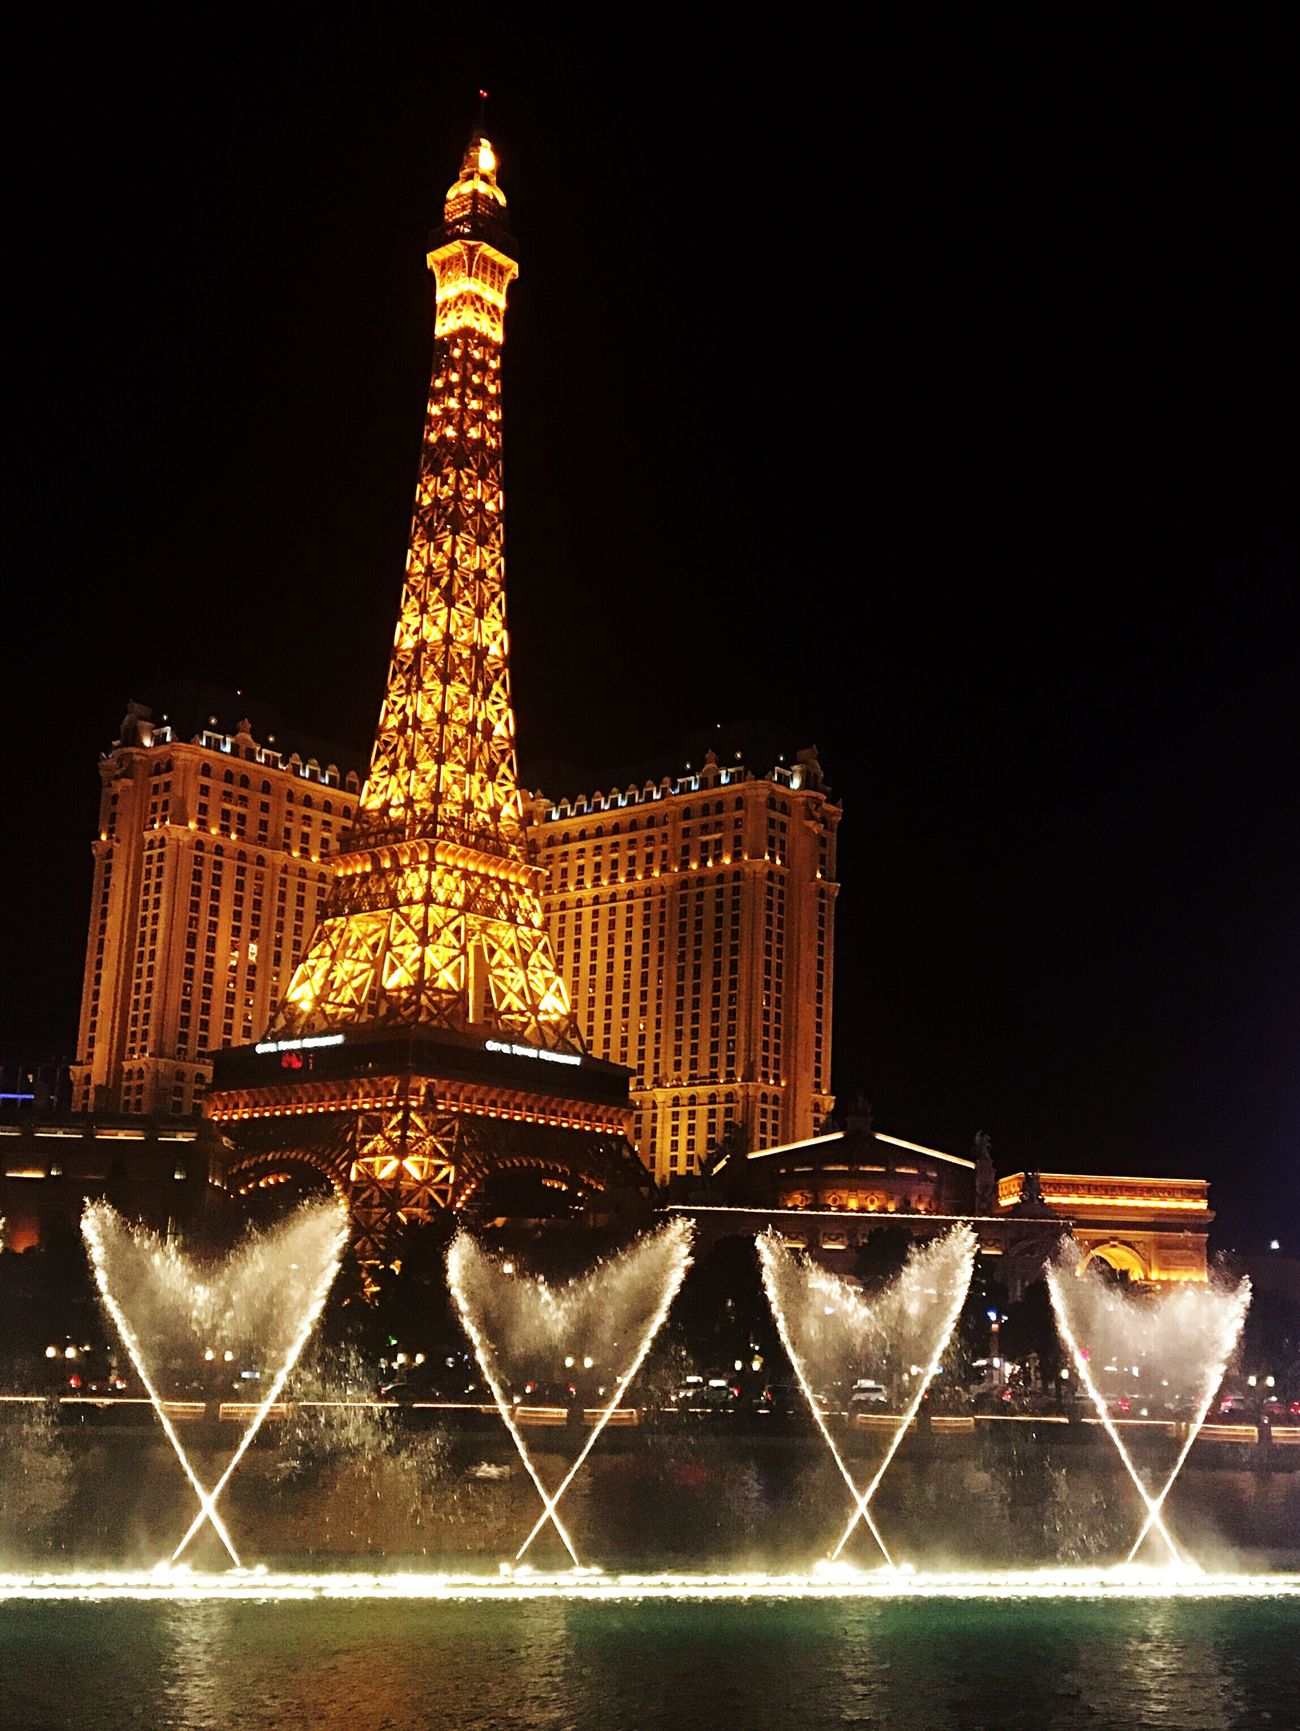 43 Golden Moments ❤️ Bellagio Fountains in front of Paris Las Vegas Las Vegas Eiffel Tower Golden Moments